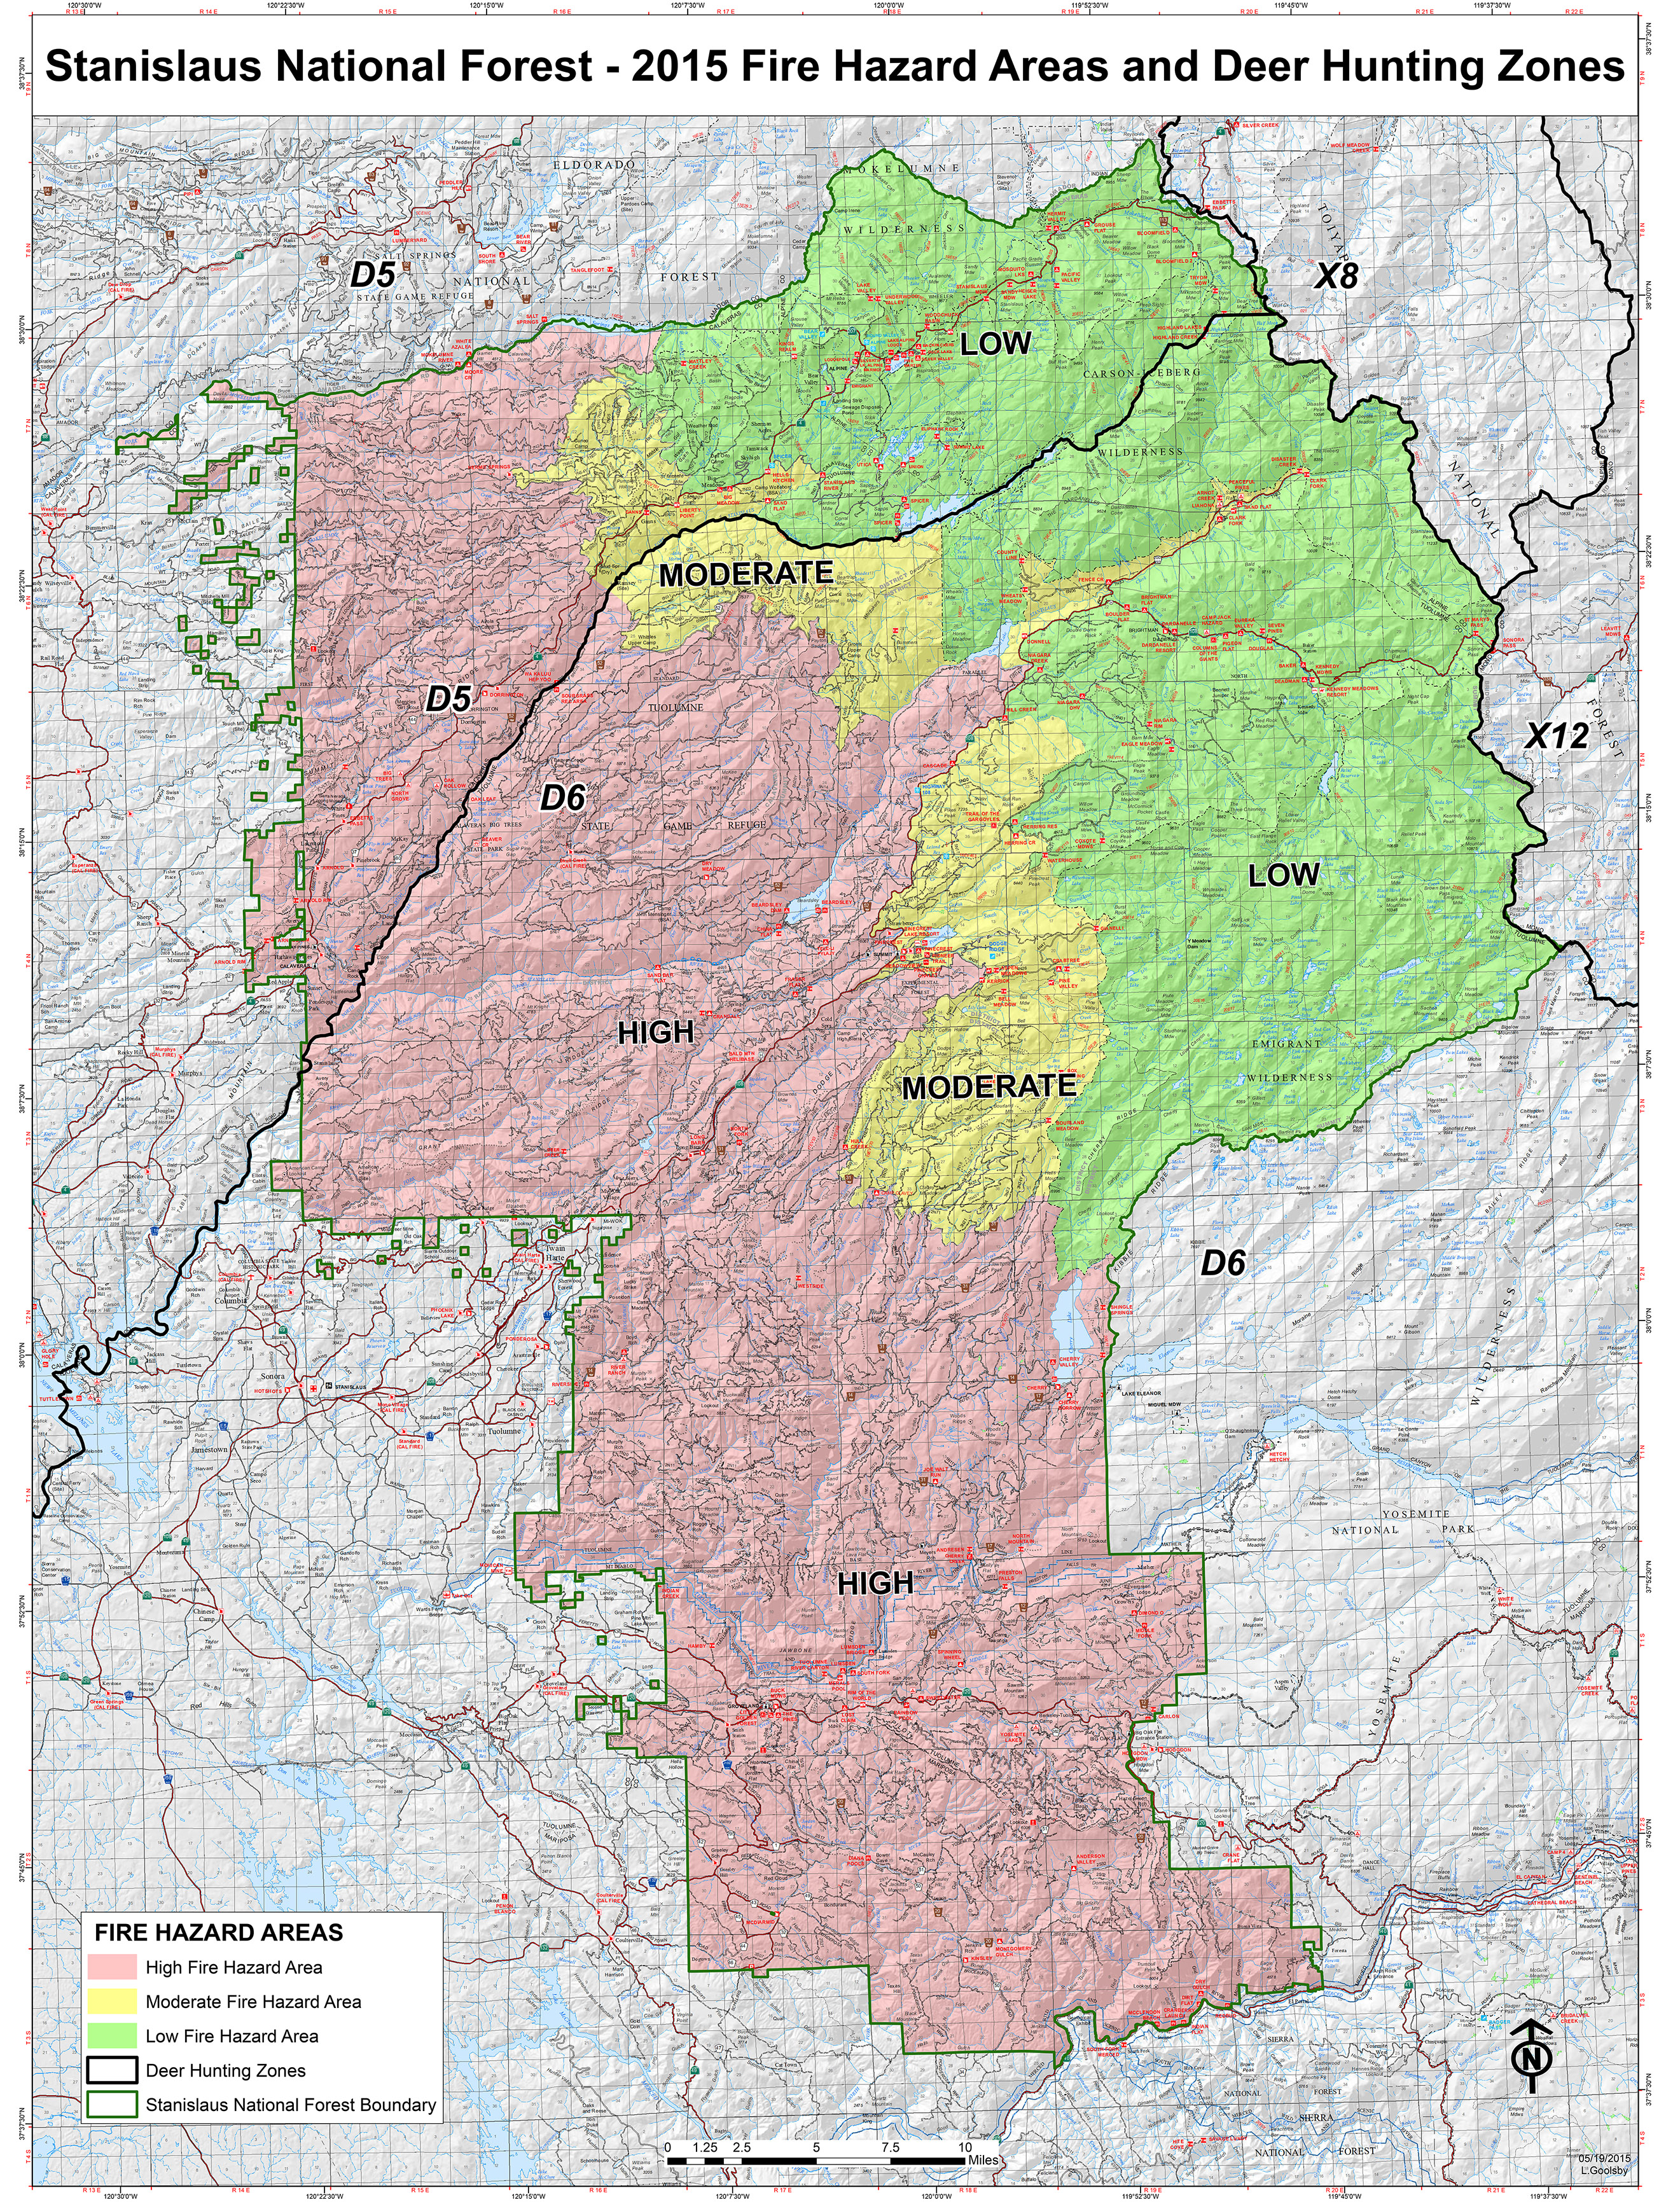 Stanislaus National Forest Maps  Publications - Us national forest fire map